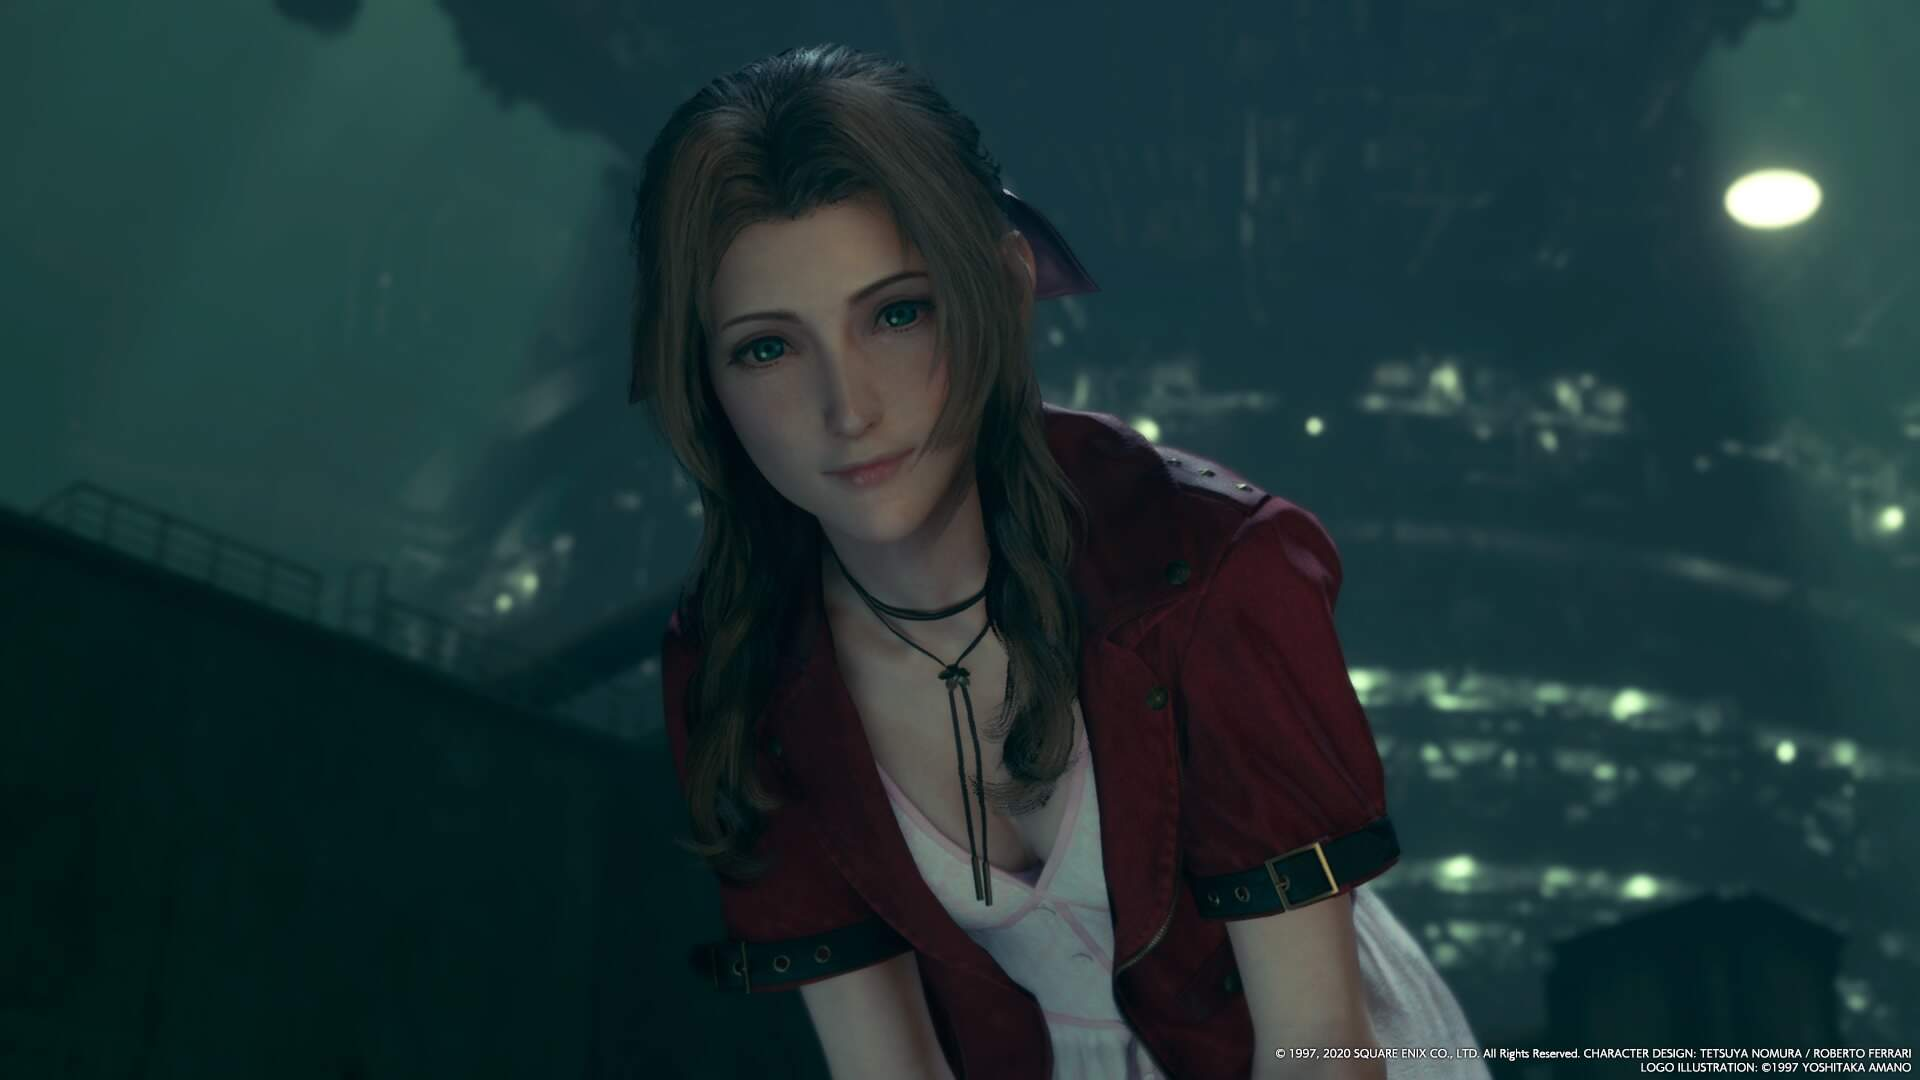 Final Fantasy 7 Remake Romance Guide: Can You Romance Characters?